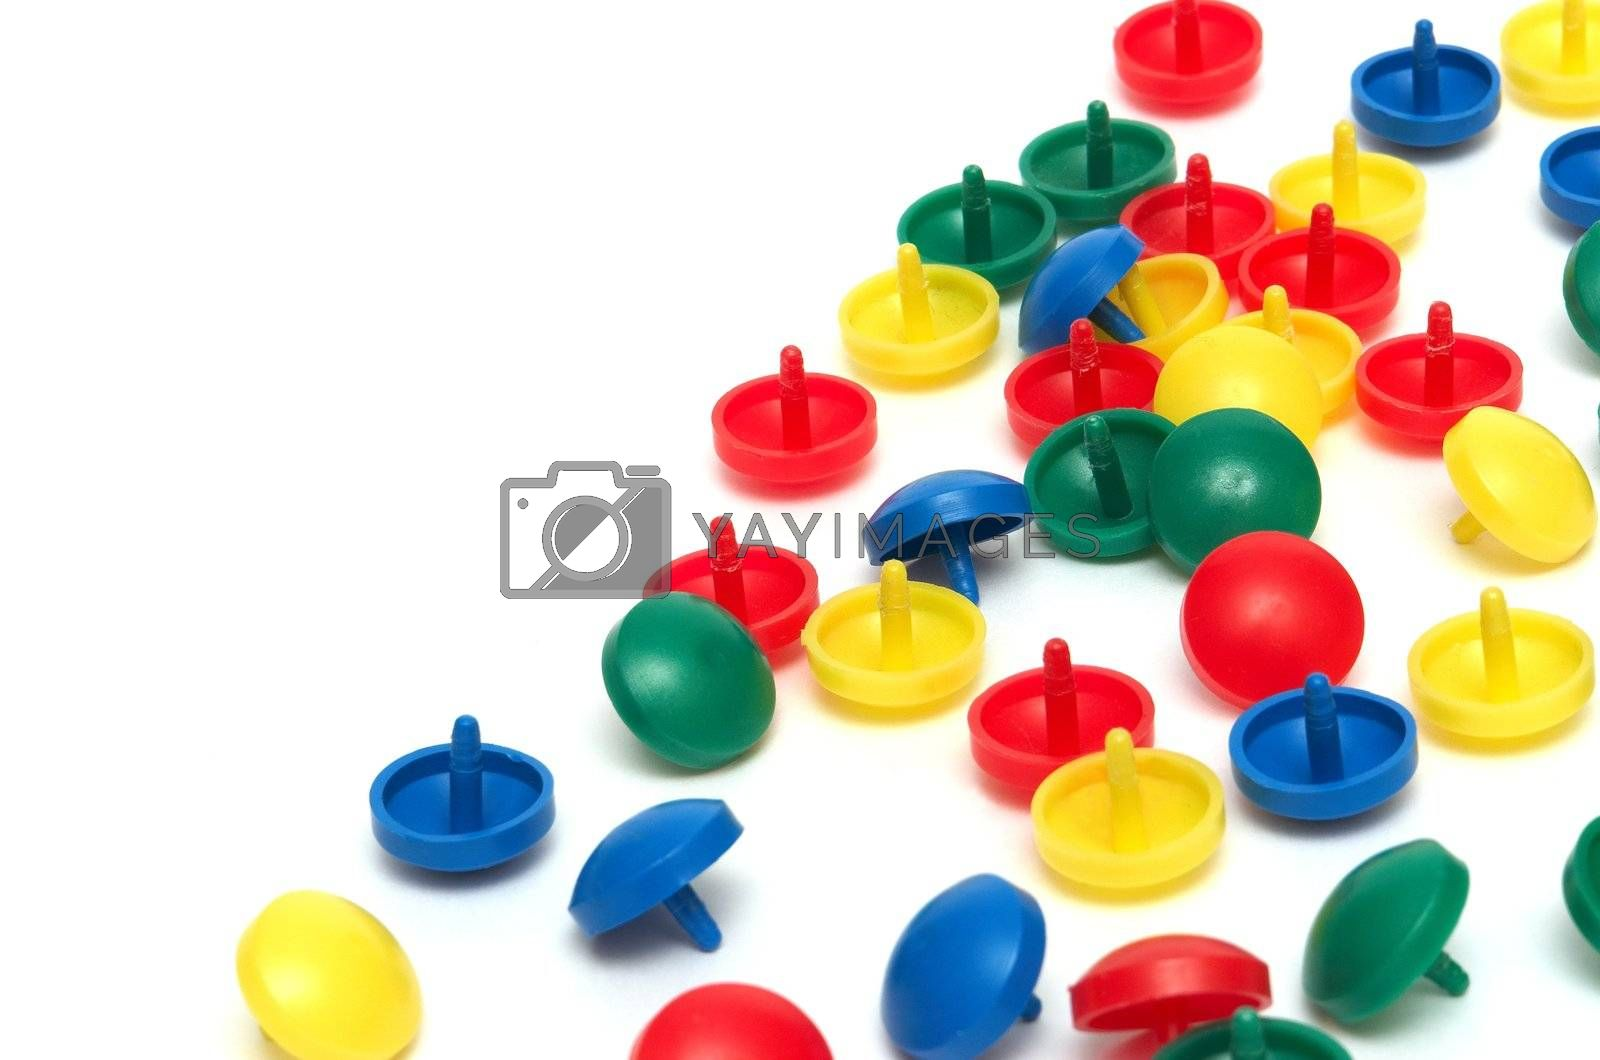 Small multi-coloured figures on a white background